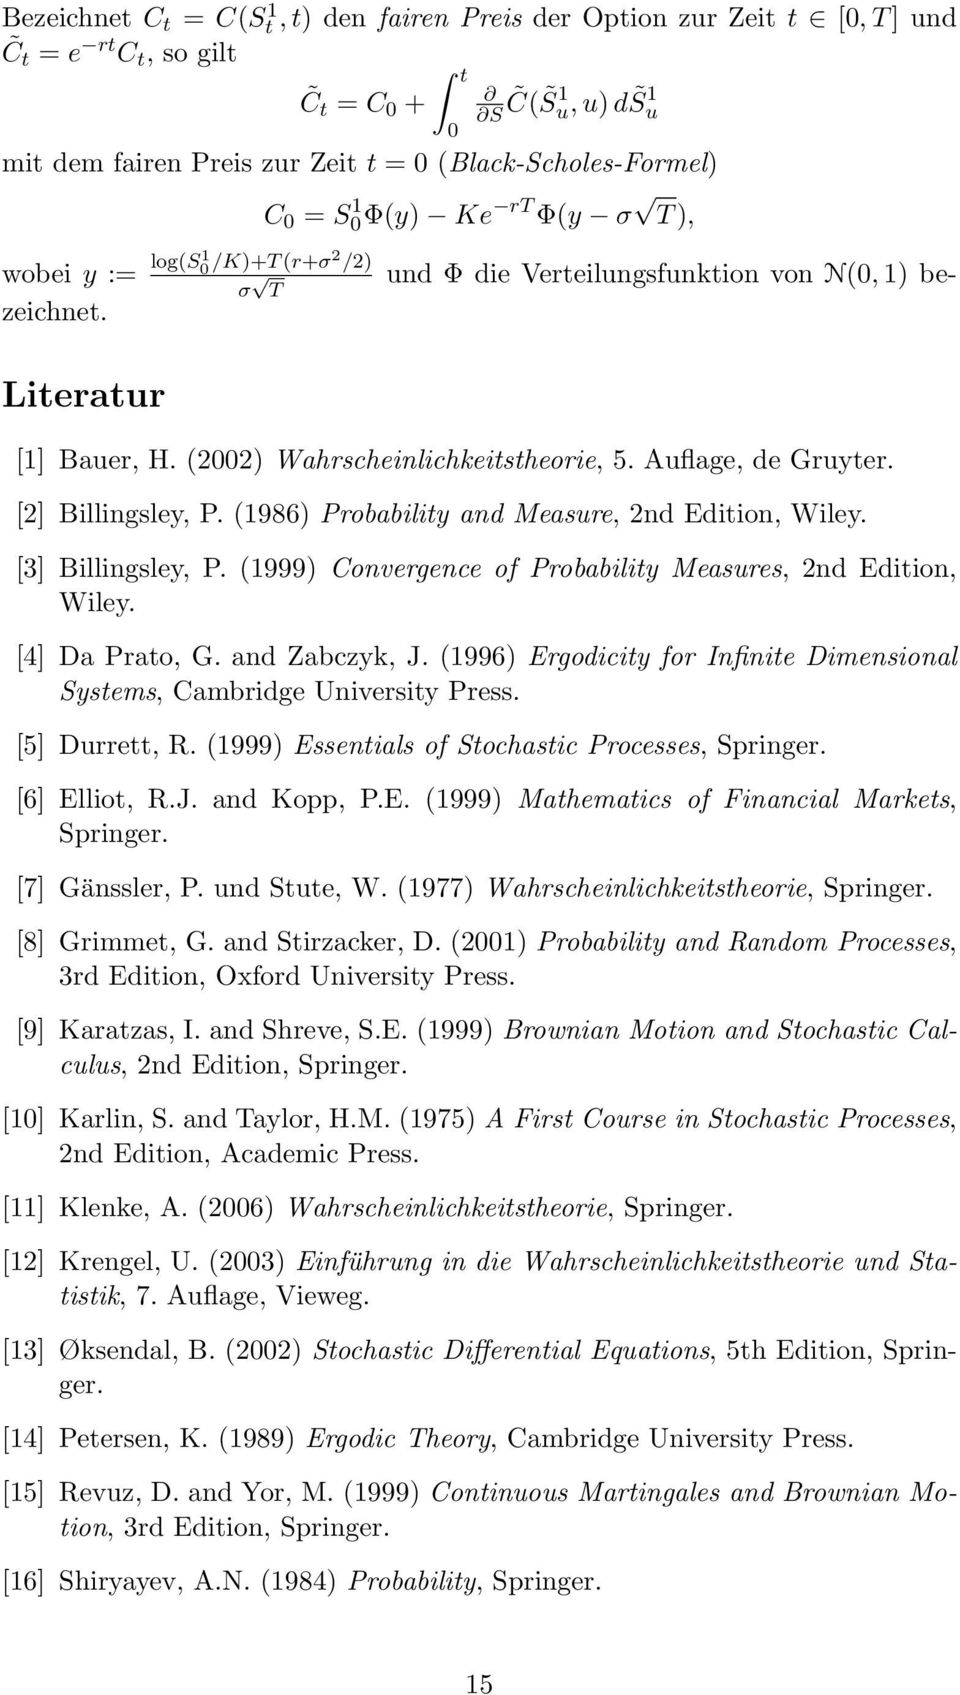 [2] Billingsley, P. (1986) Probability and Measure, 2nd Edition, Wiley. [3] Billingsley, P. (1999) Convergence of Probability Measures, 2nd Edition, Wiley. [4] Da Prato, G. and Zabczyk, J.